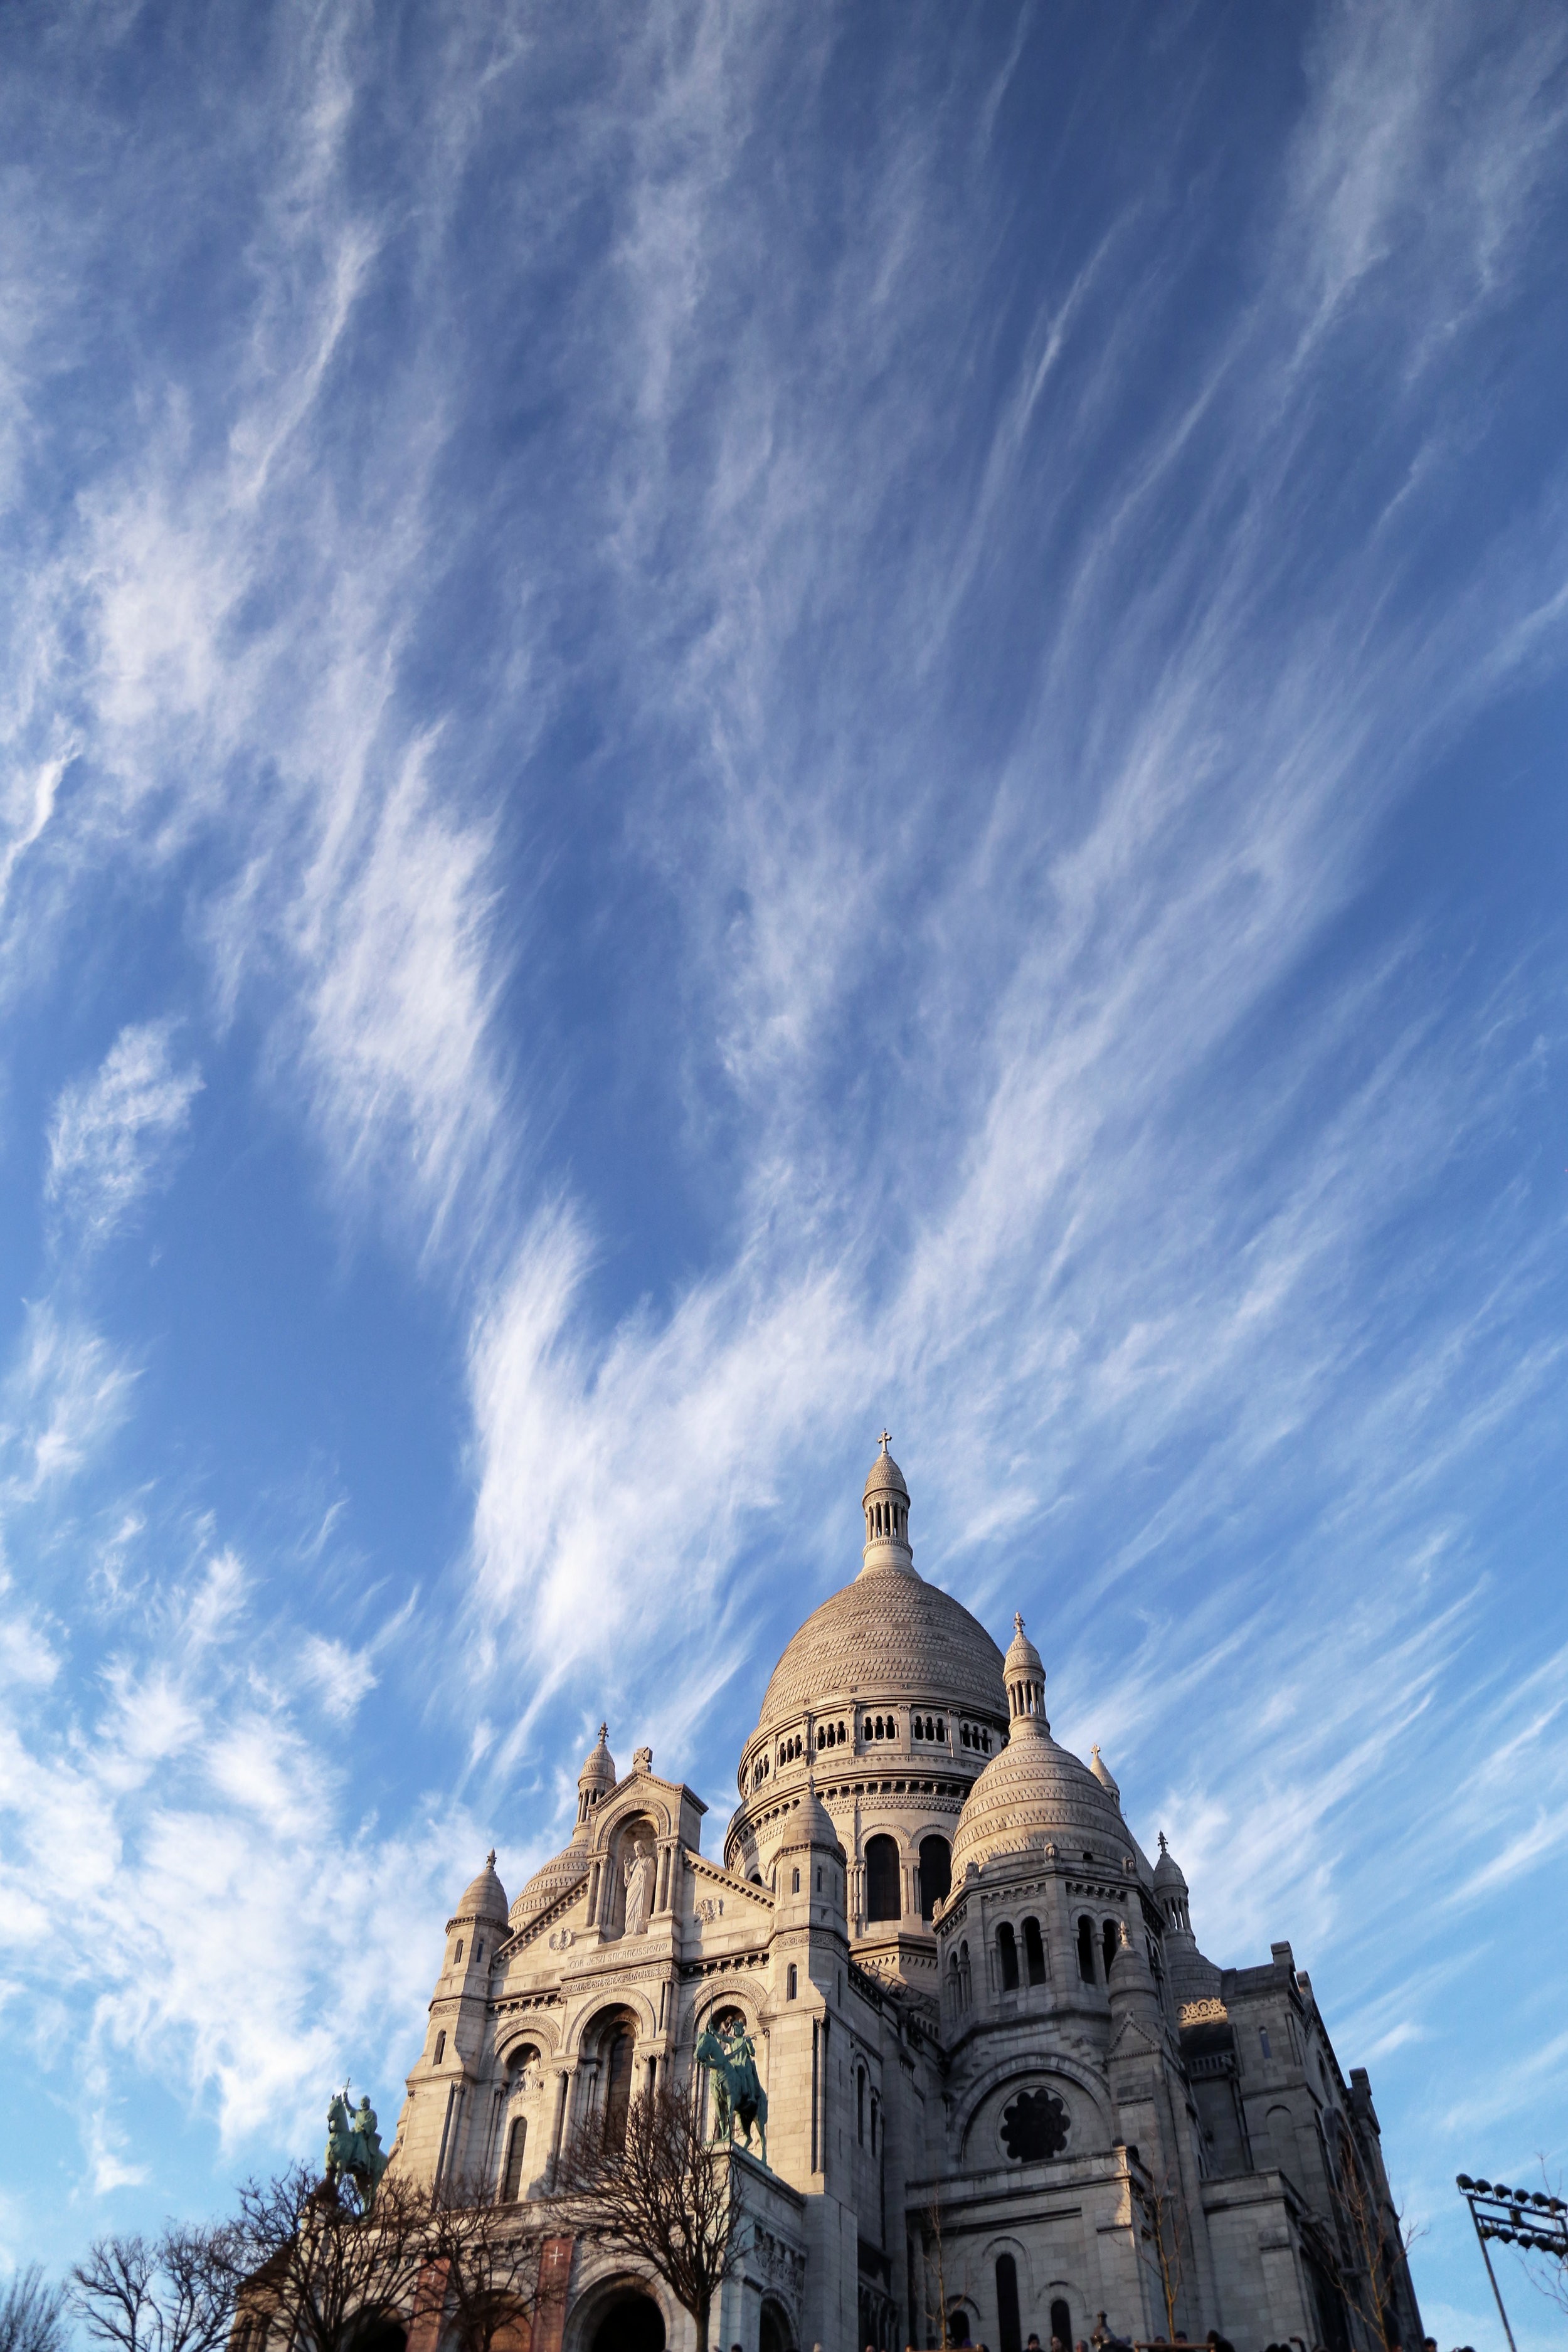 Basilica of the Sacre Coeur on top of Montmarte.